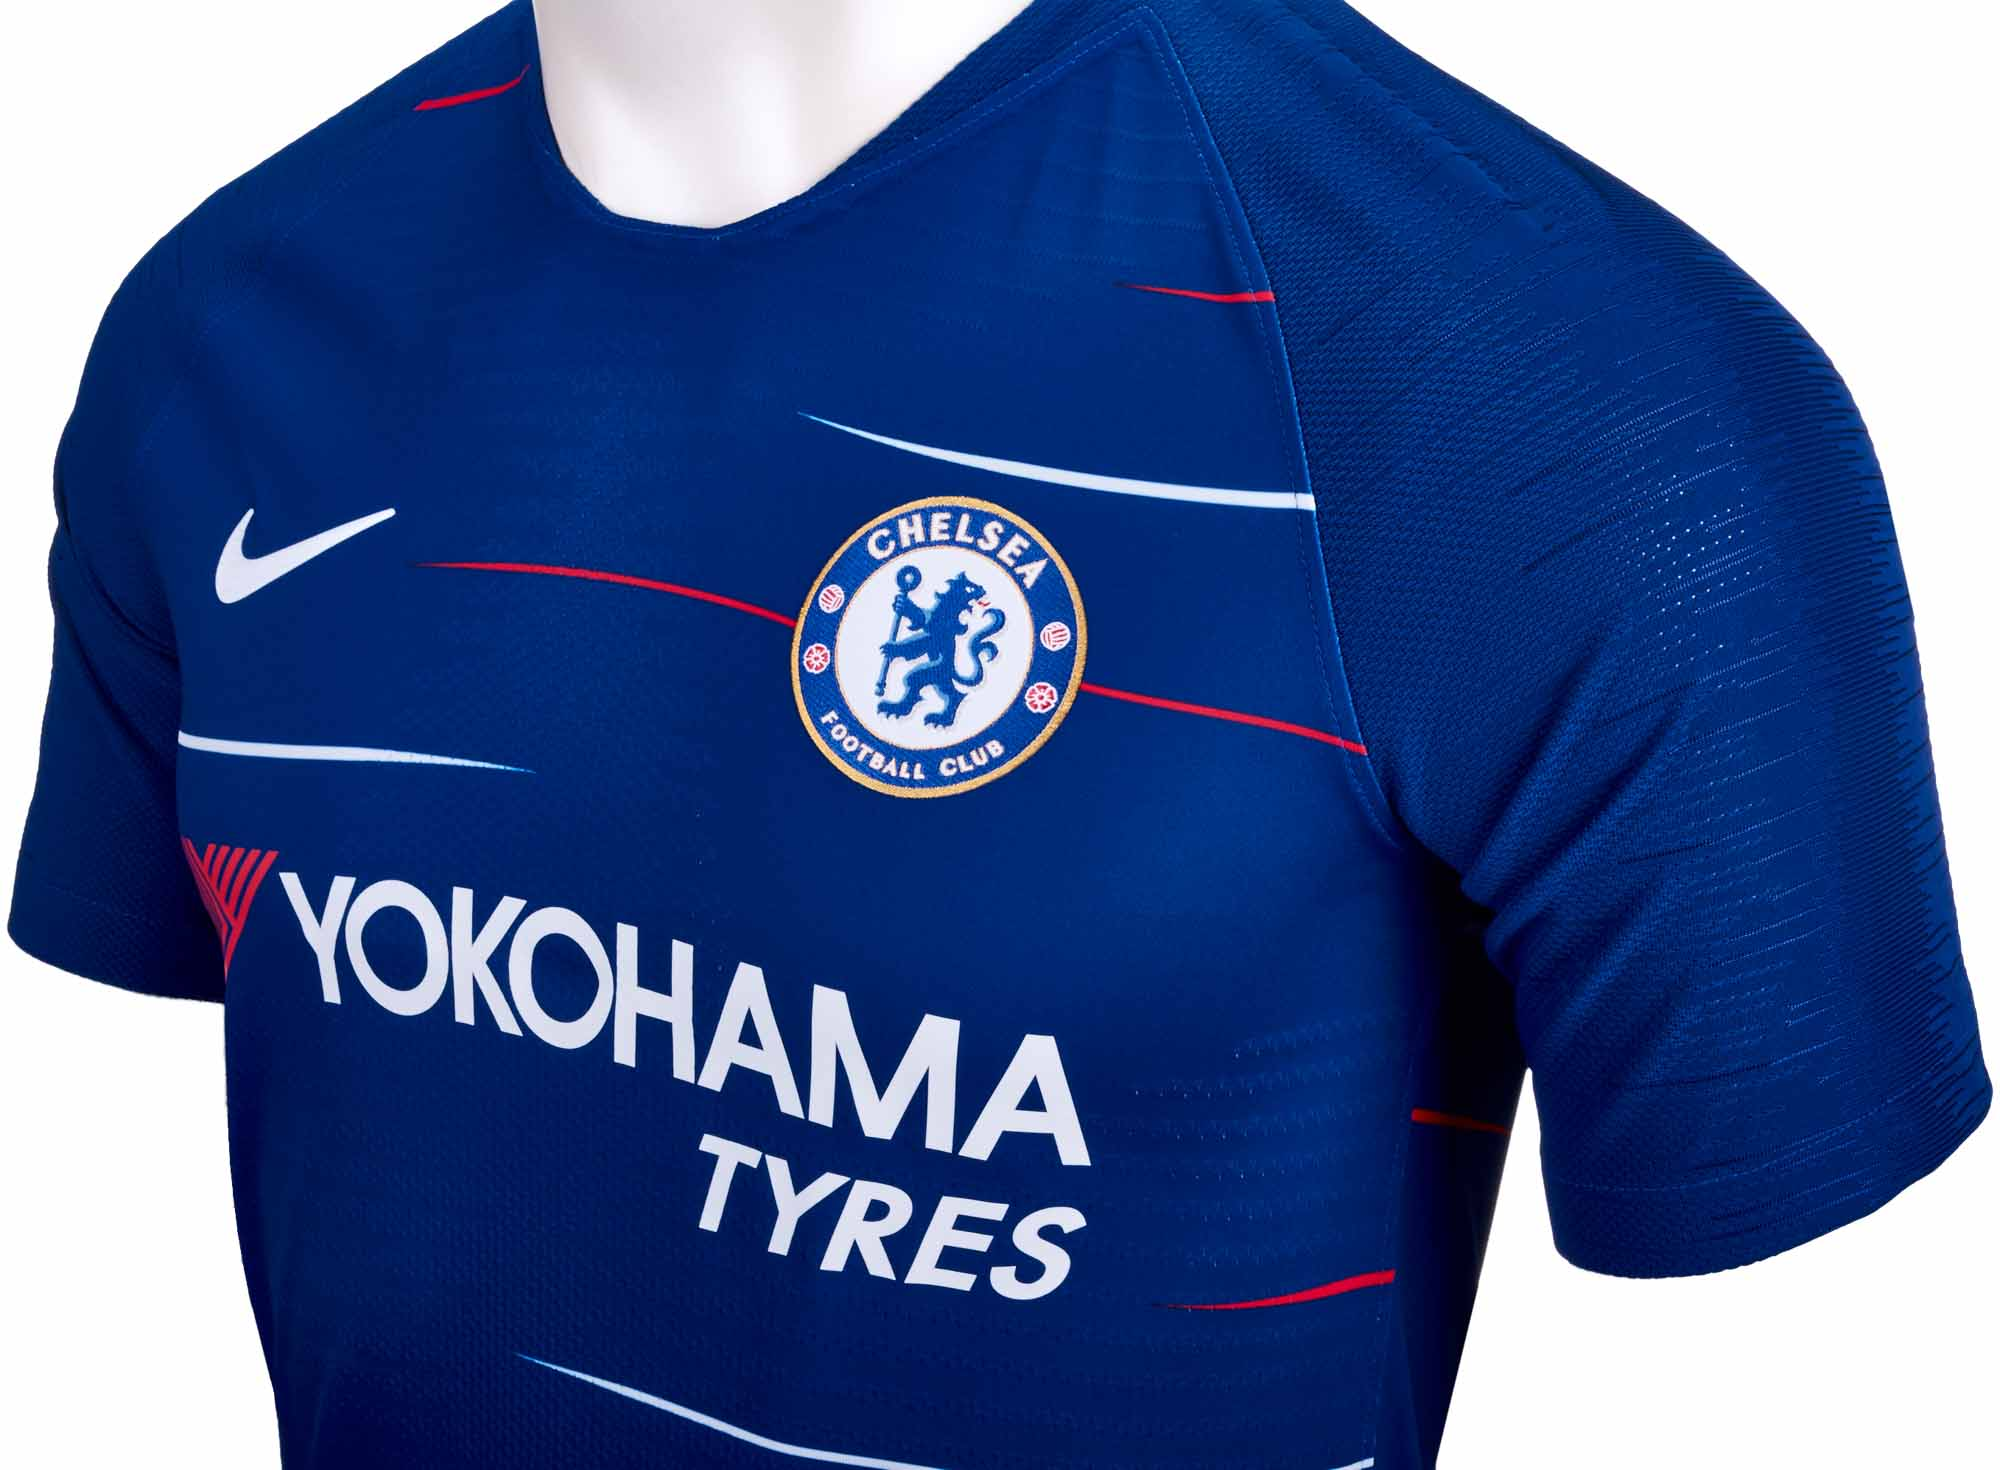 new product 167e6 0a944 2018/19 Nike Chelsea Home Match Jersey - Soccer Master